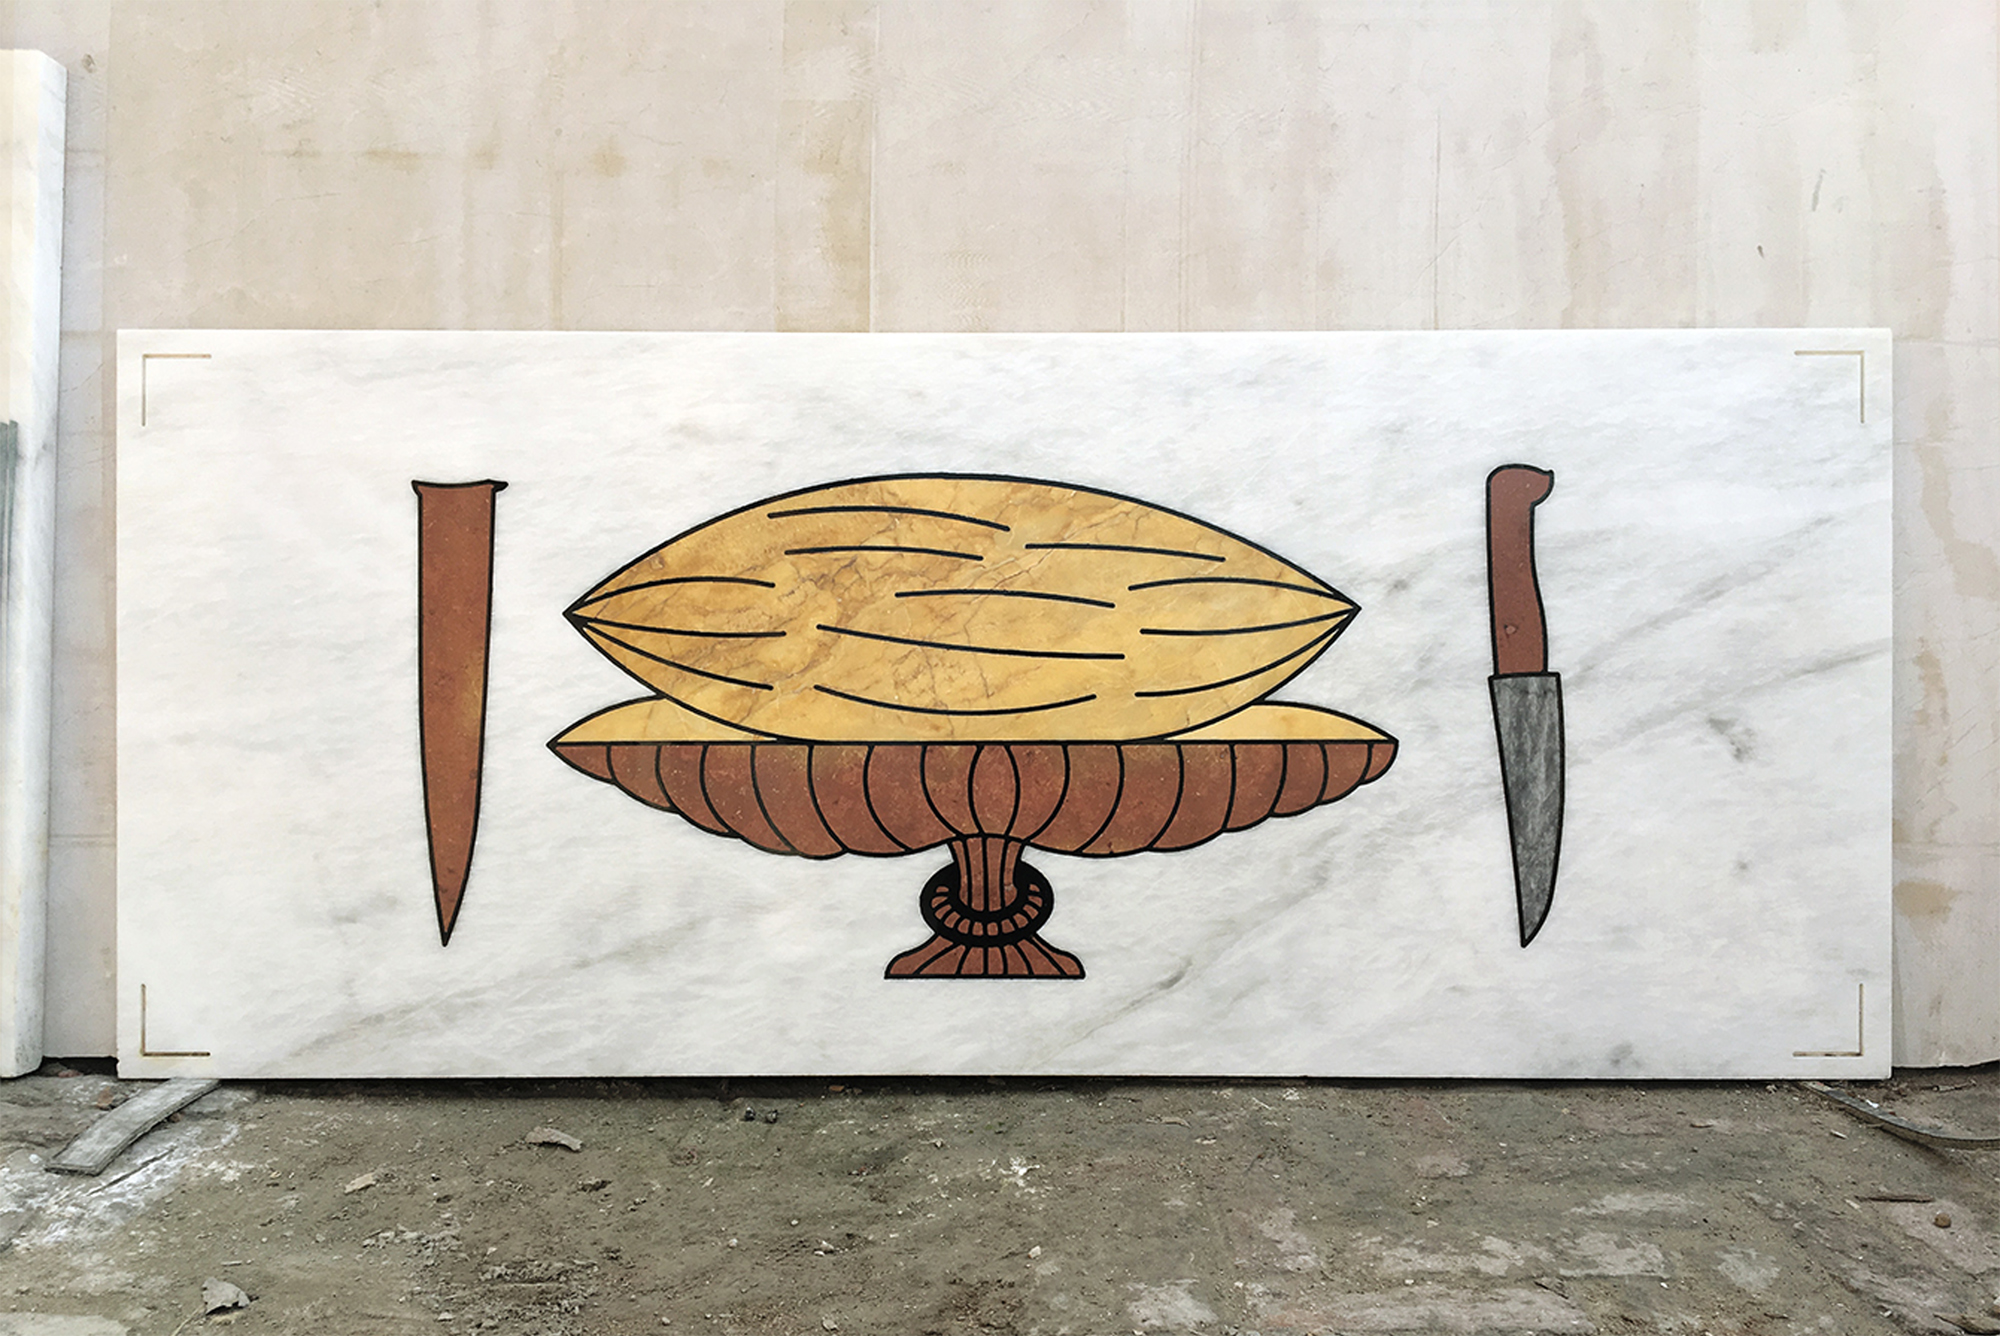 Hamra Abbas, Fruits: Gardens of Paradise, 2018. Marble, 2 x 5 feet. Courtesy of the artist